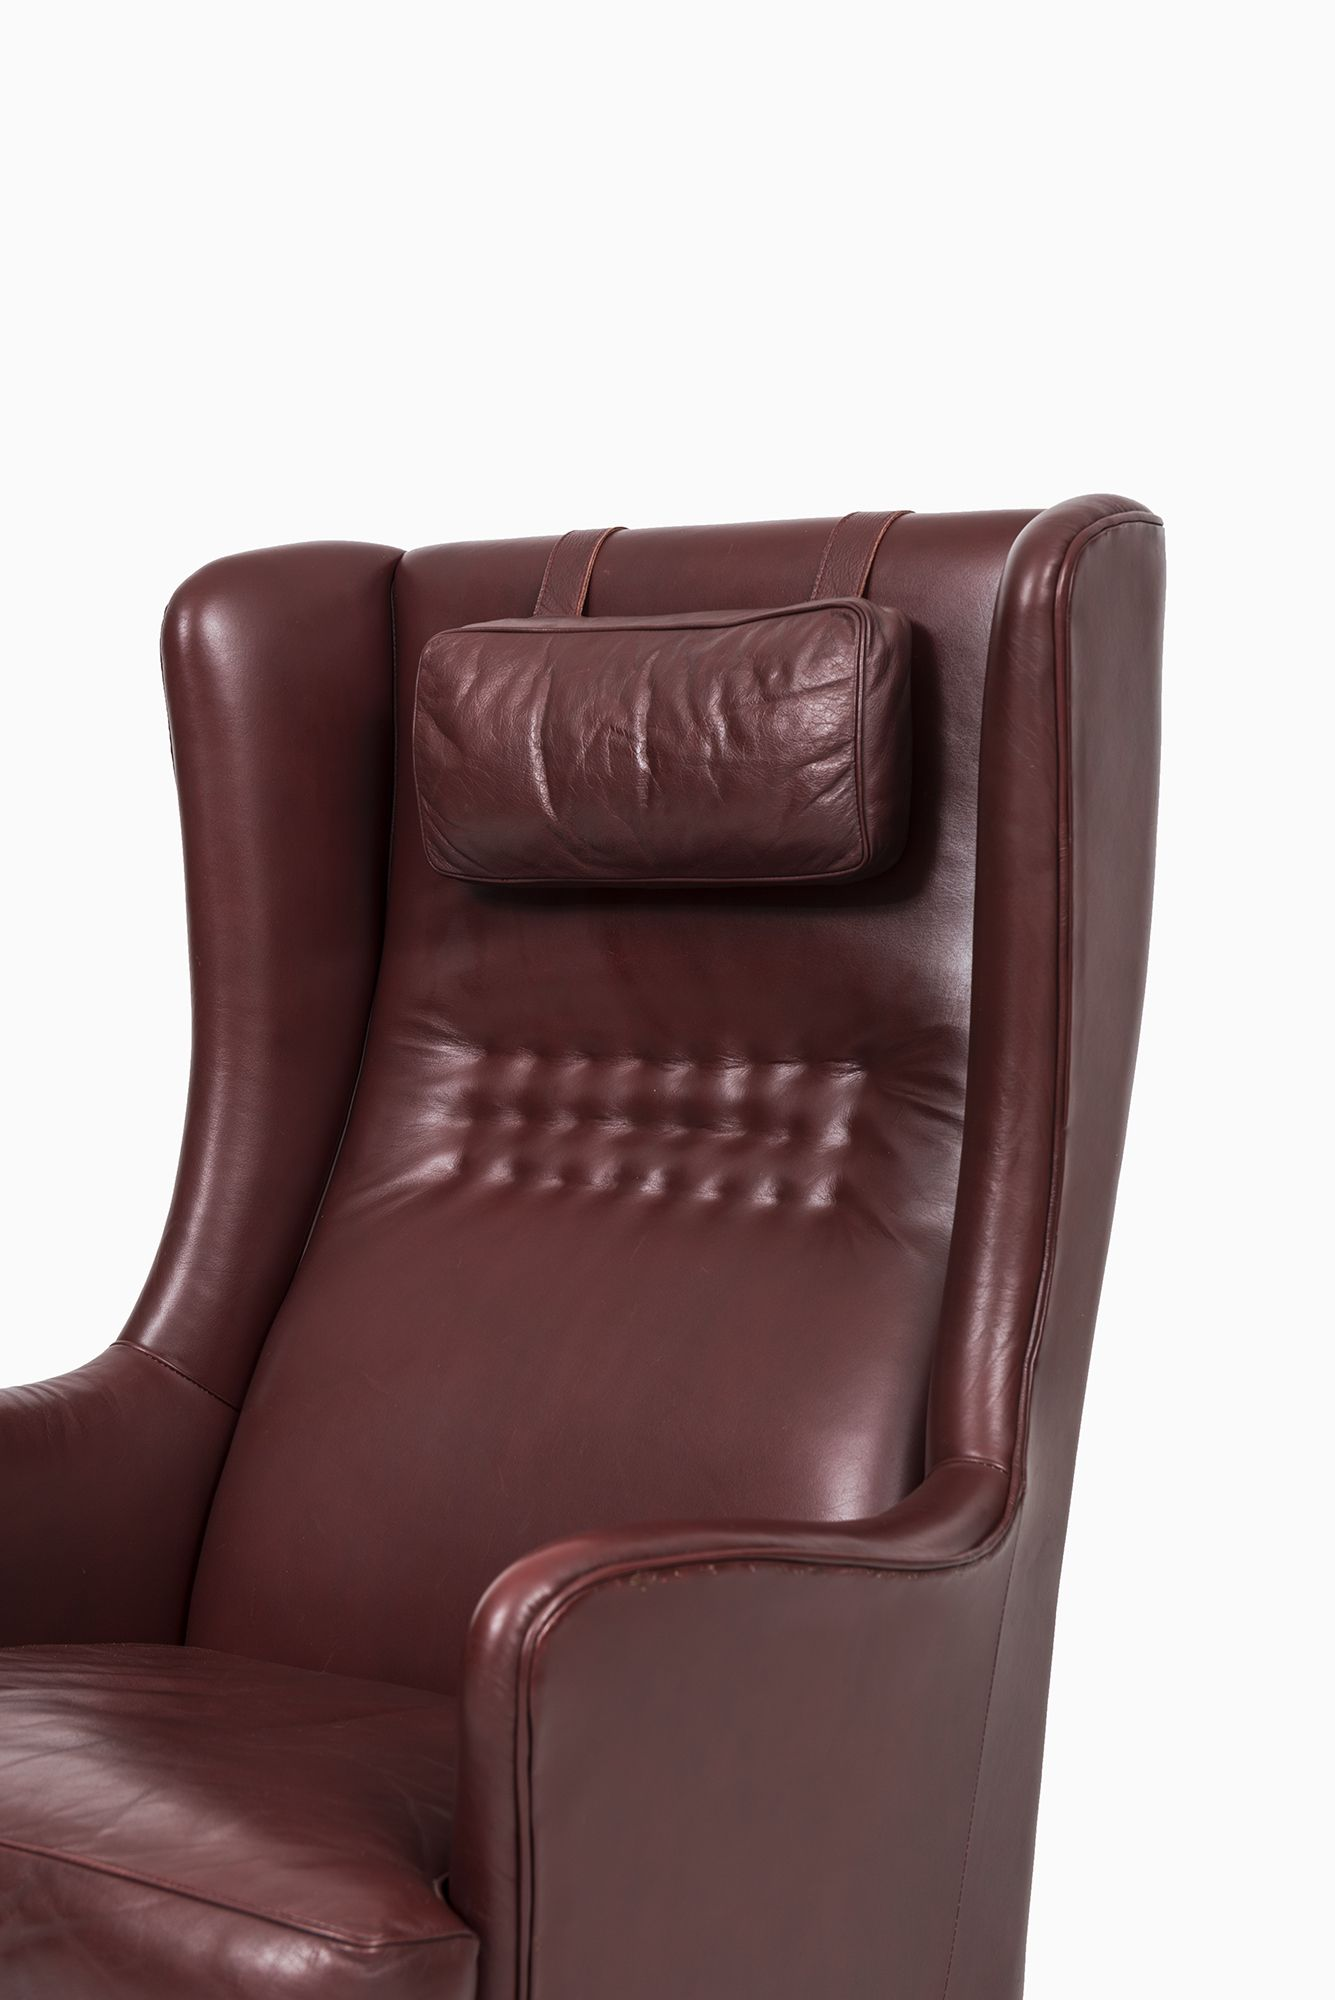 Arne Norell wingback easy chair in dark red leather at Studio Schalling